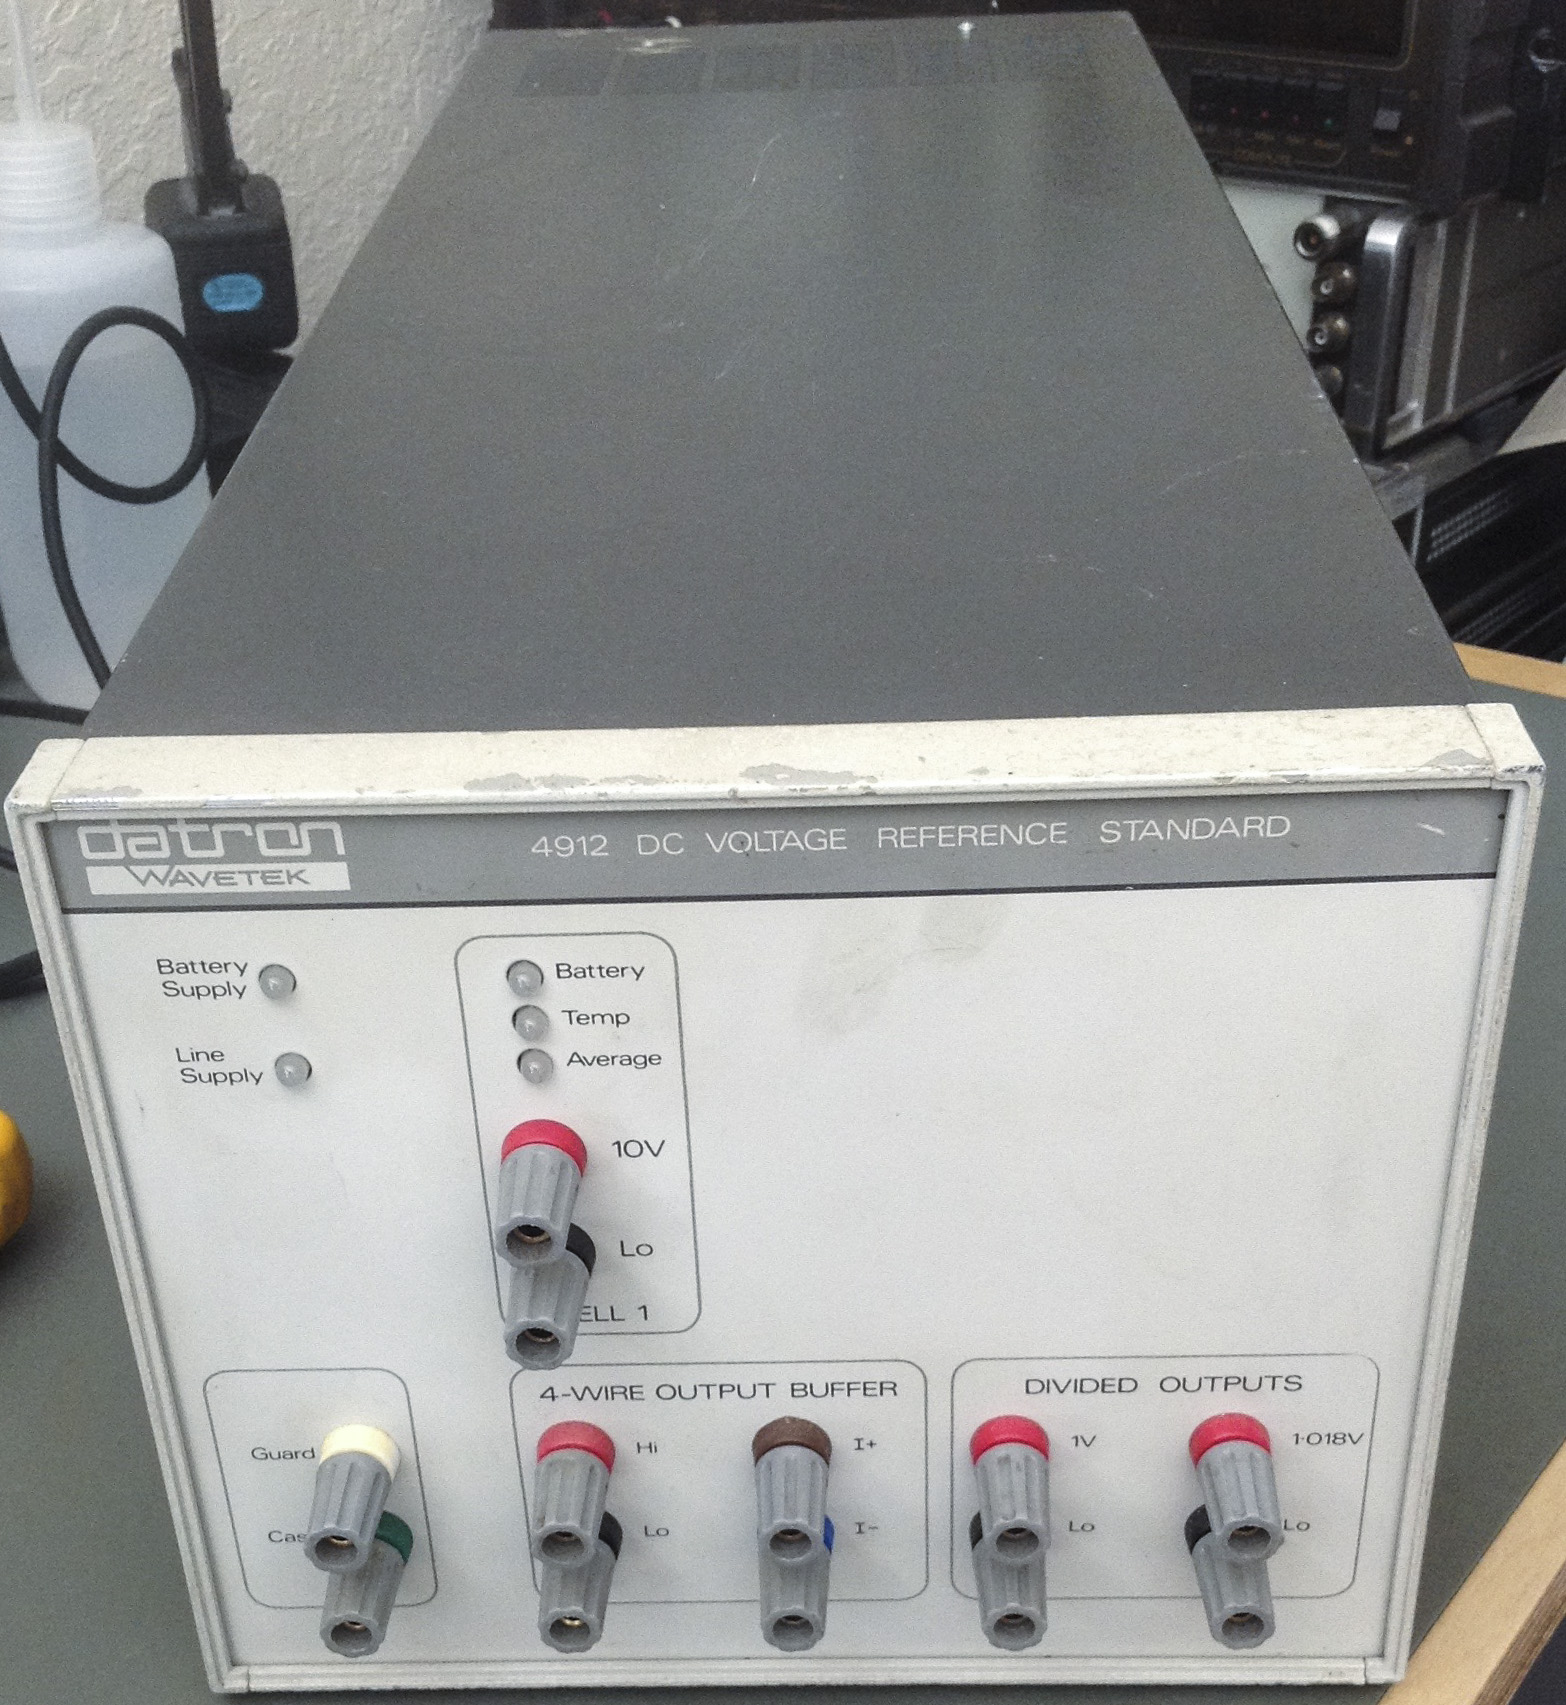 Datron 4910 Series Dc Voltage Reference Repair Divider Designed To Produce 35v Output From 10v Since Was Earlier Prior Fluke Acquired Companys Assets Its Likely That 734a Developed After Idea